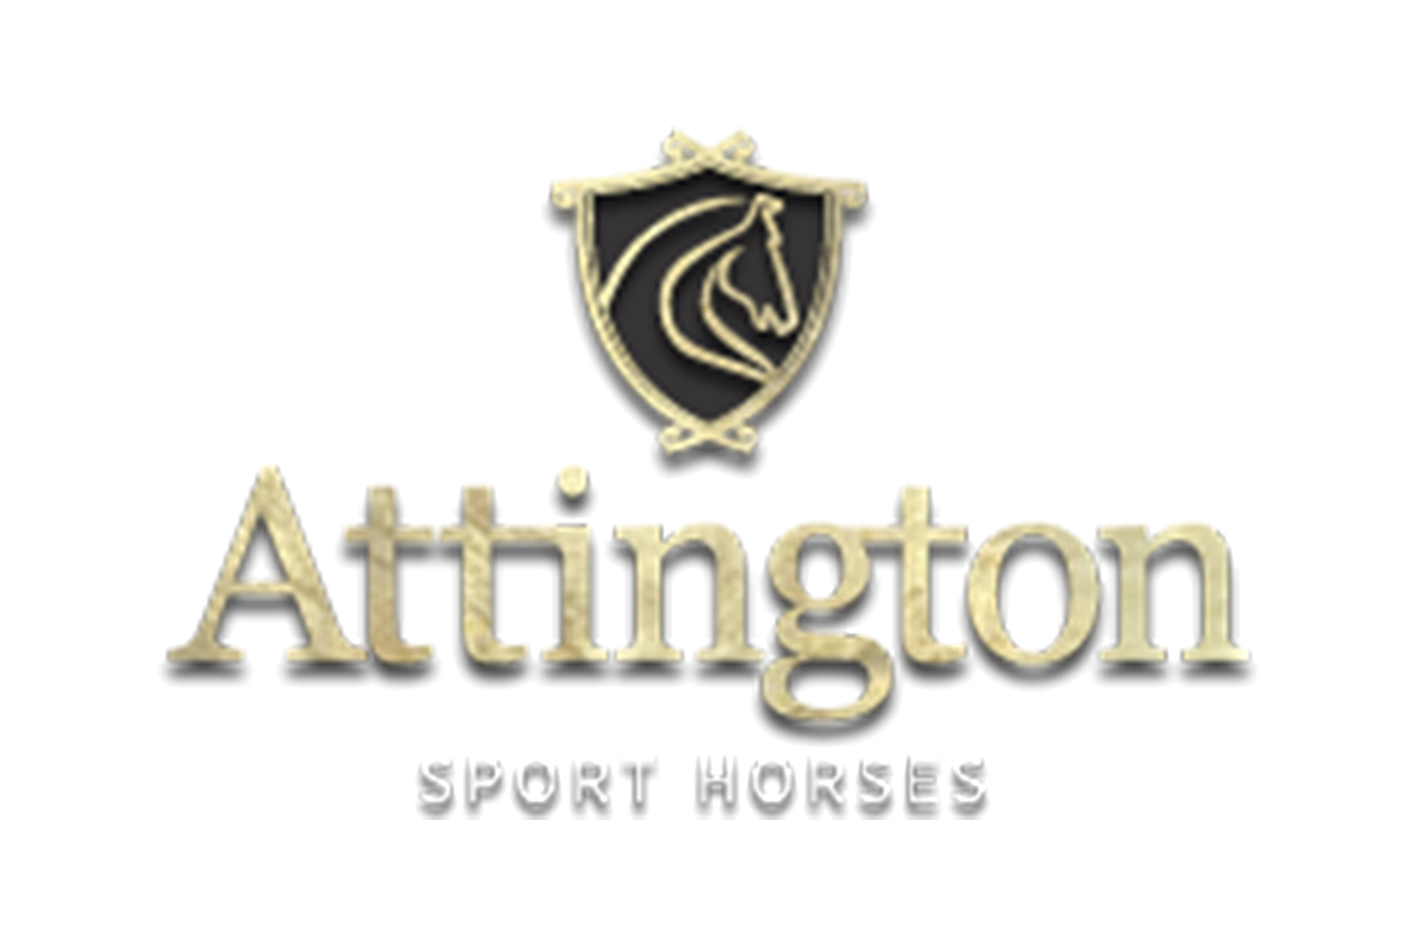 attington_logo5.jpg